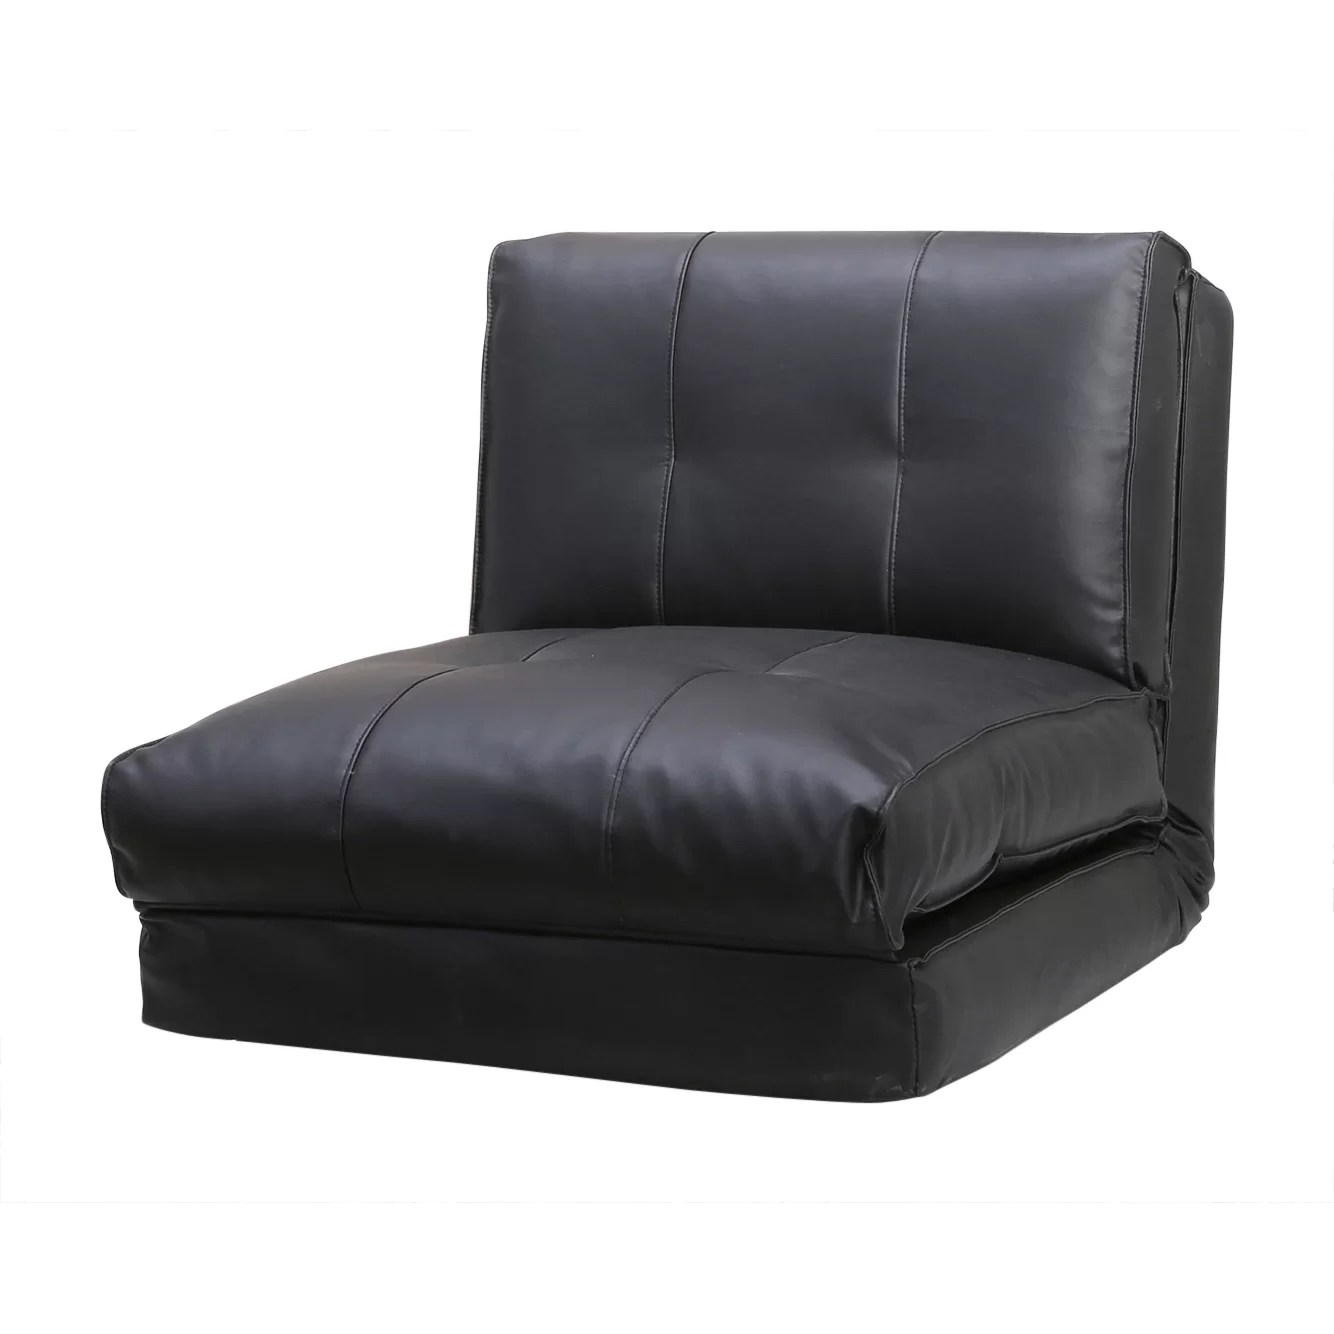 Latitude Run Balmoral Single Sleeper Convertible Chair